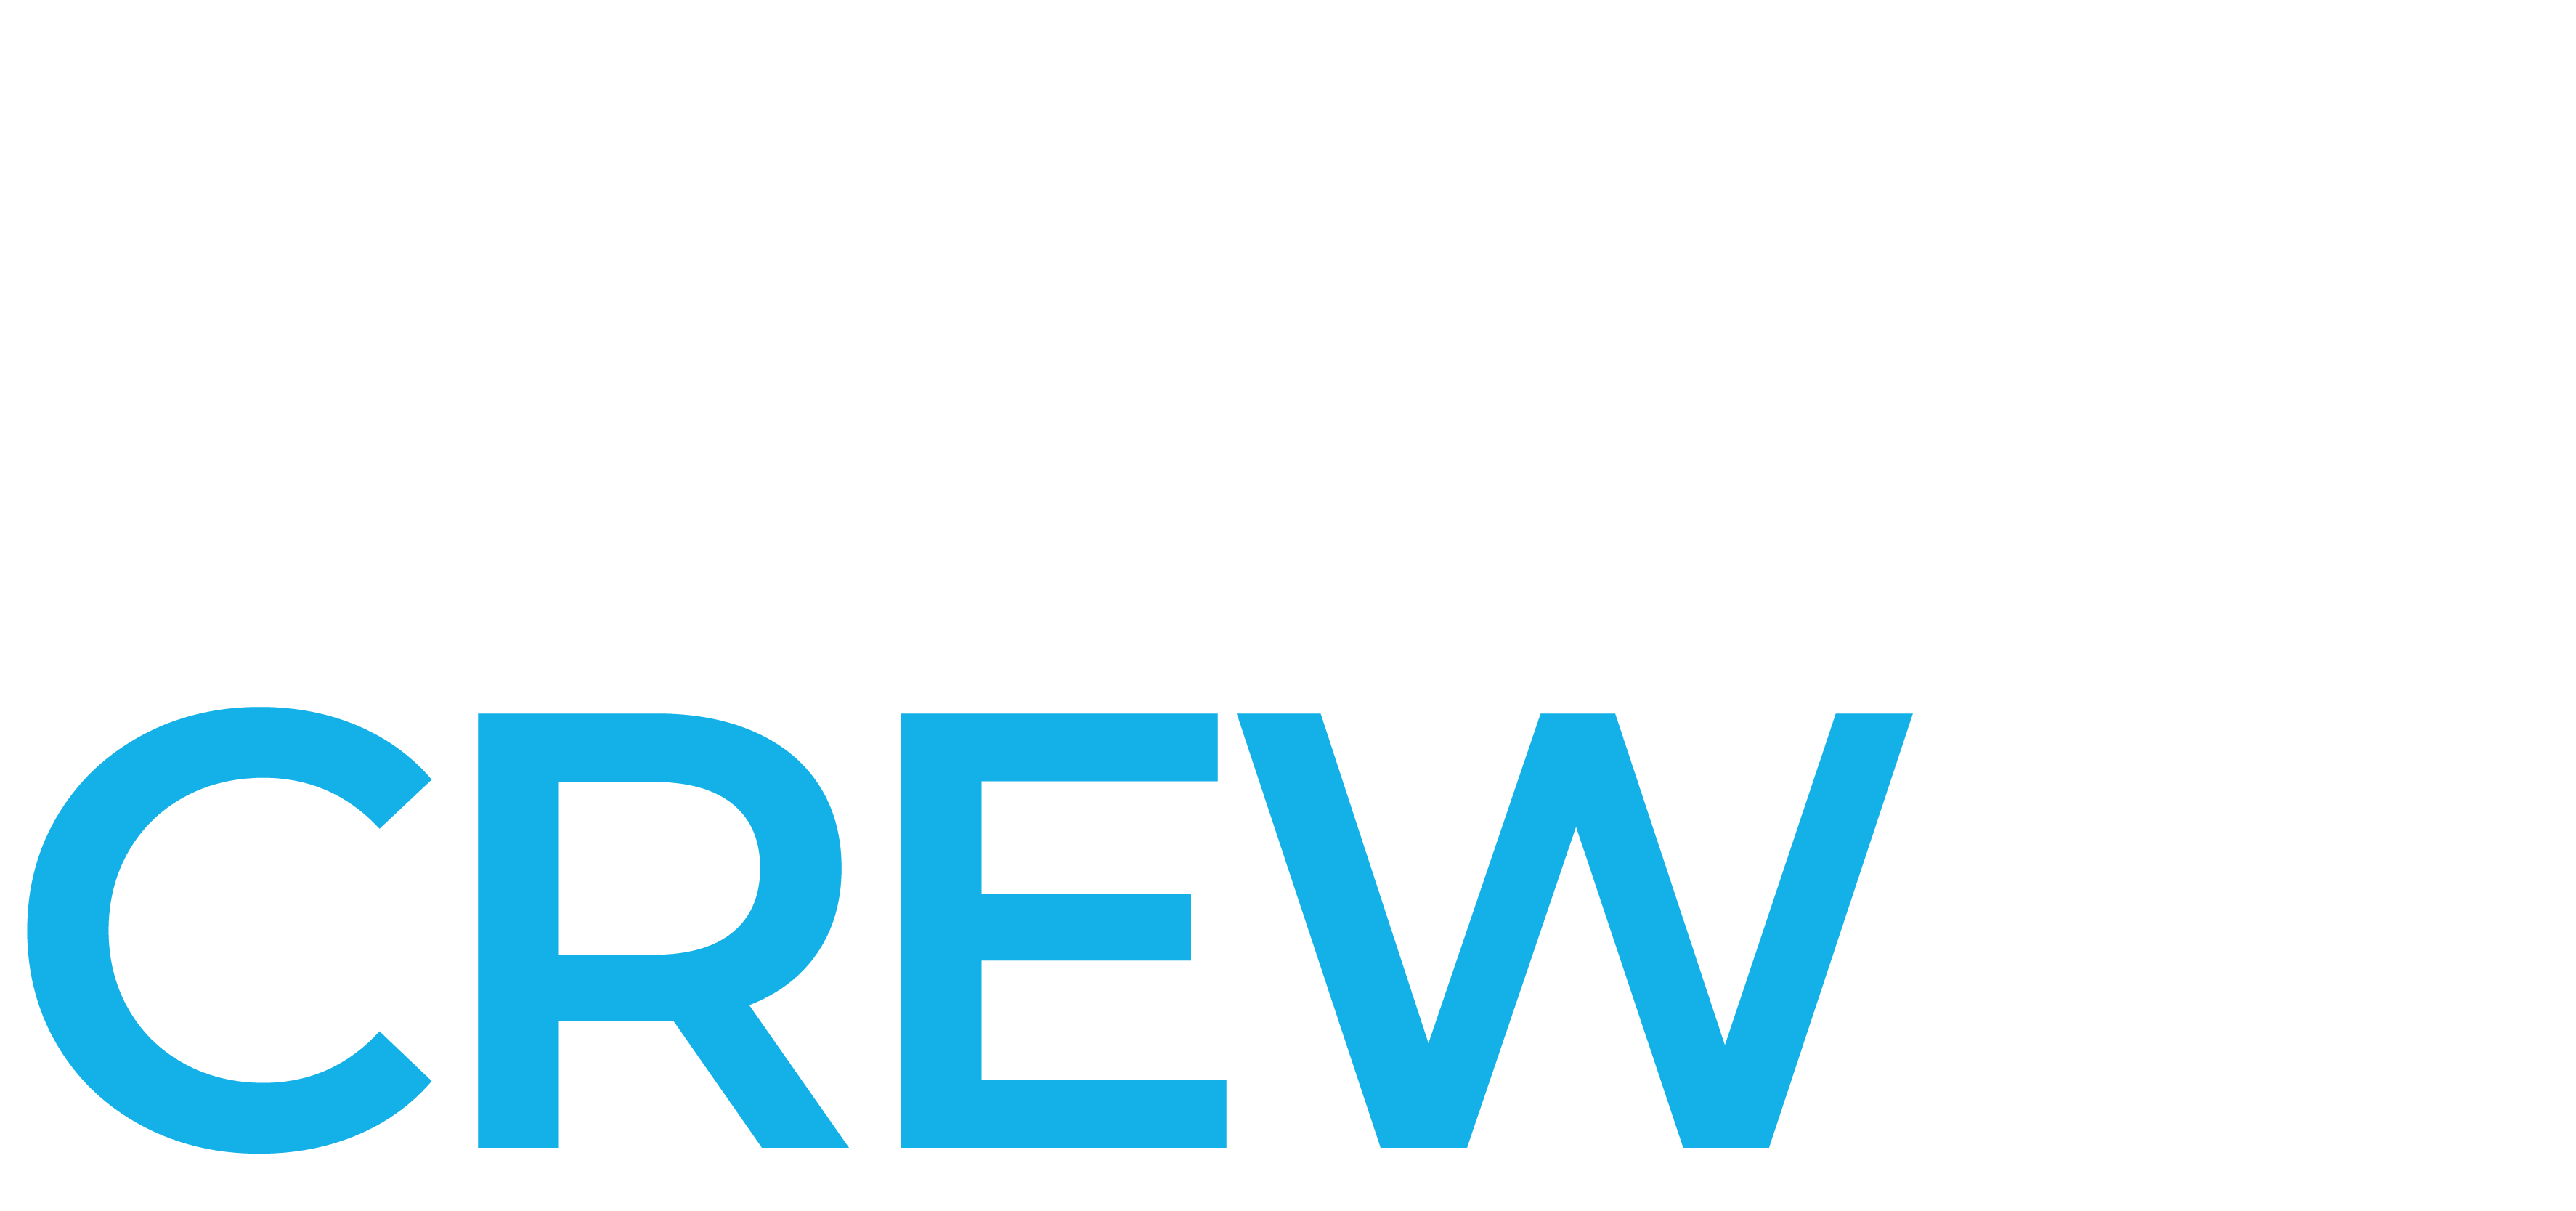 Delta Crew - The South West's Leading Crewing Company